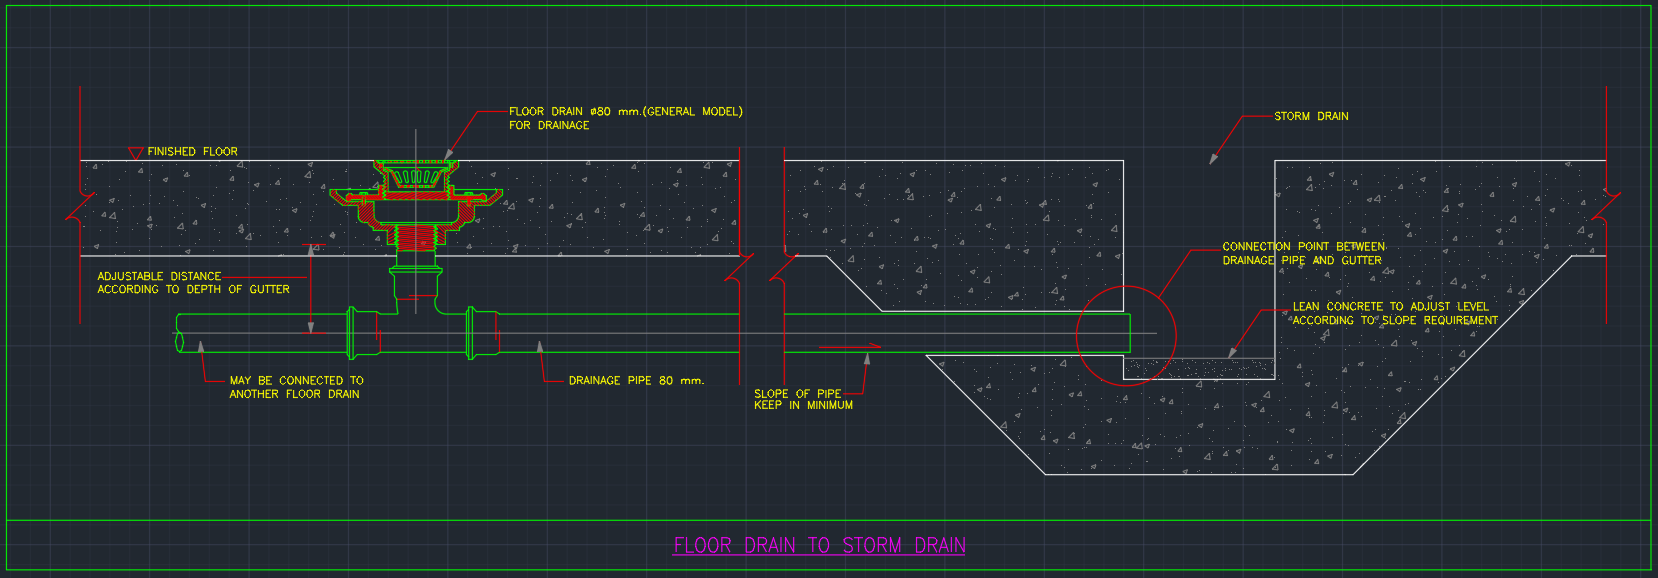 Floor Drain To Storm Drain Free Cad Blocks And Cad Drawing